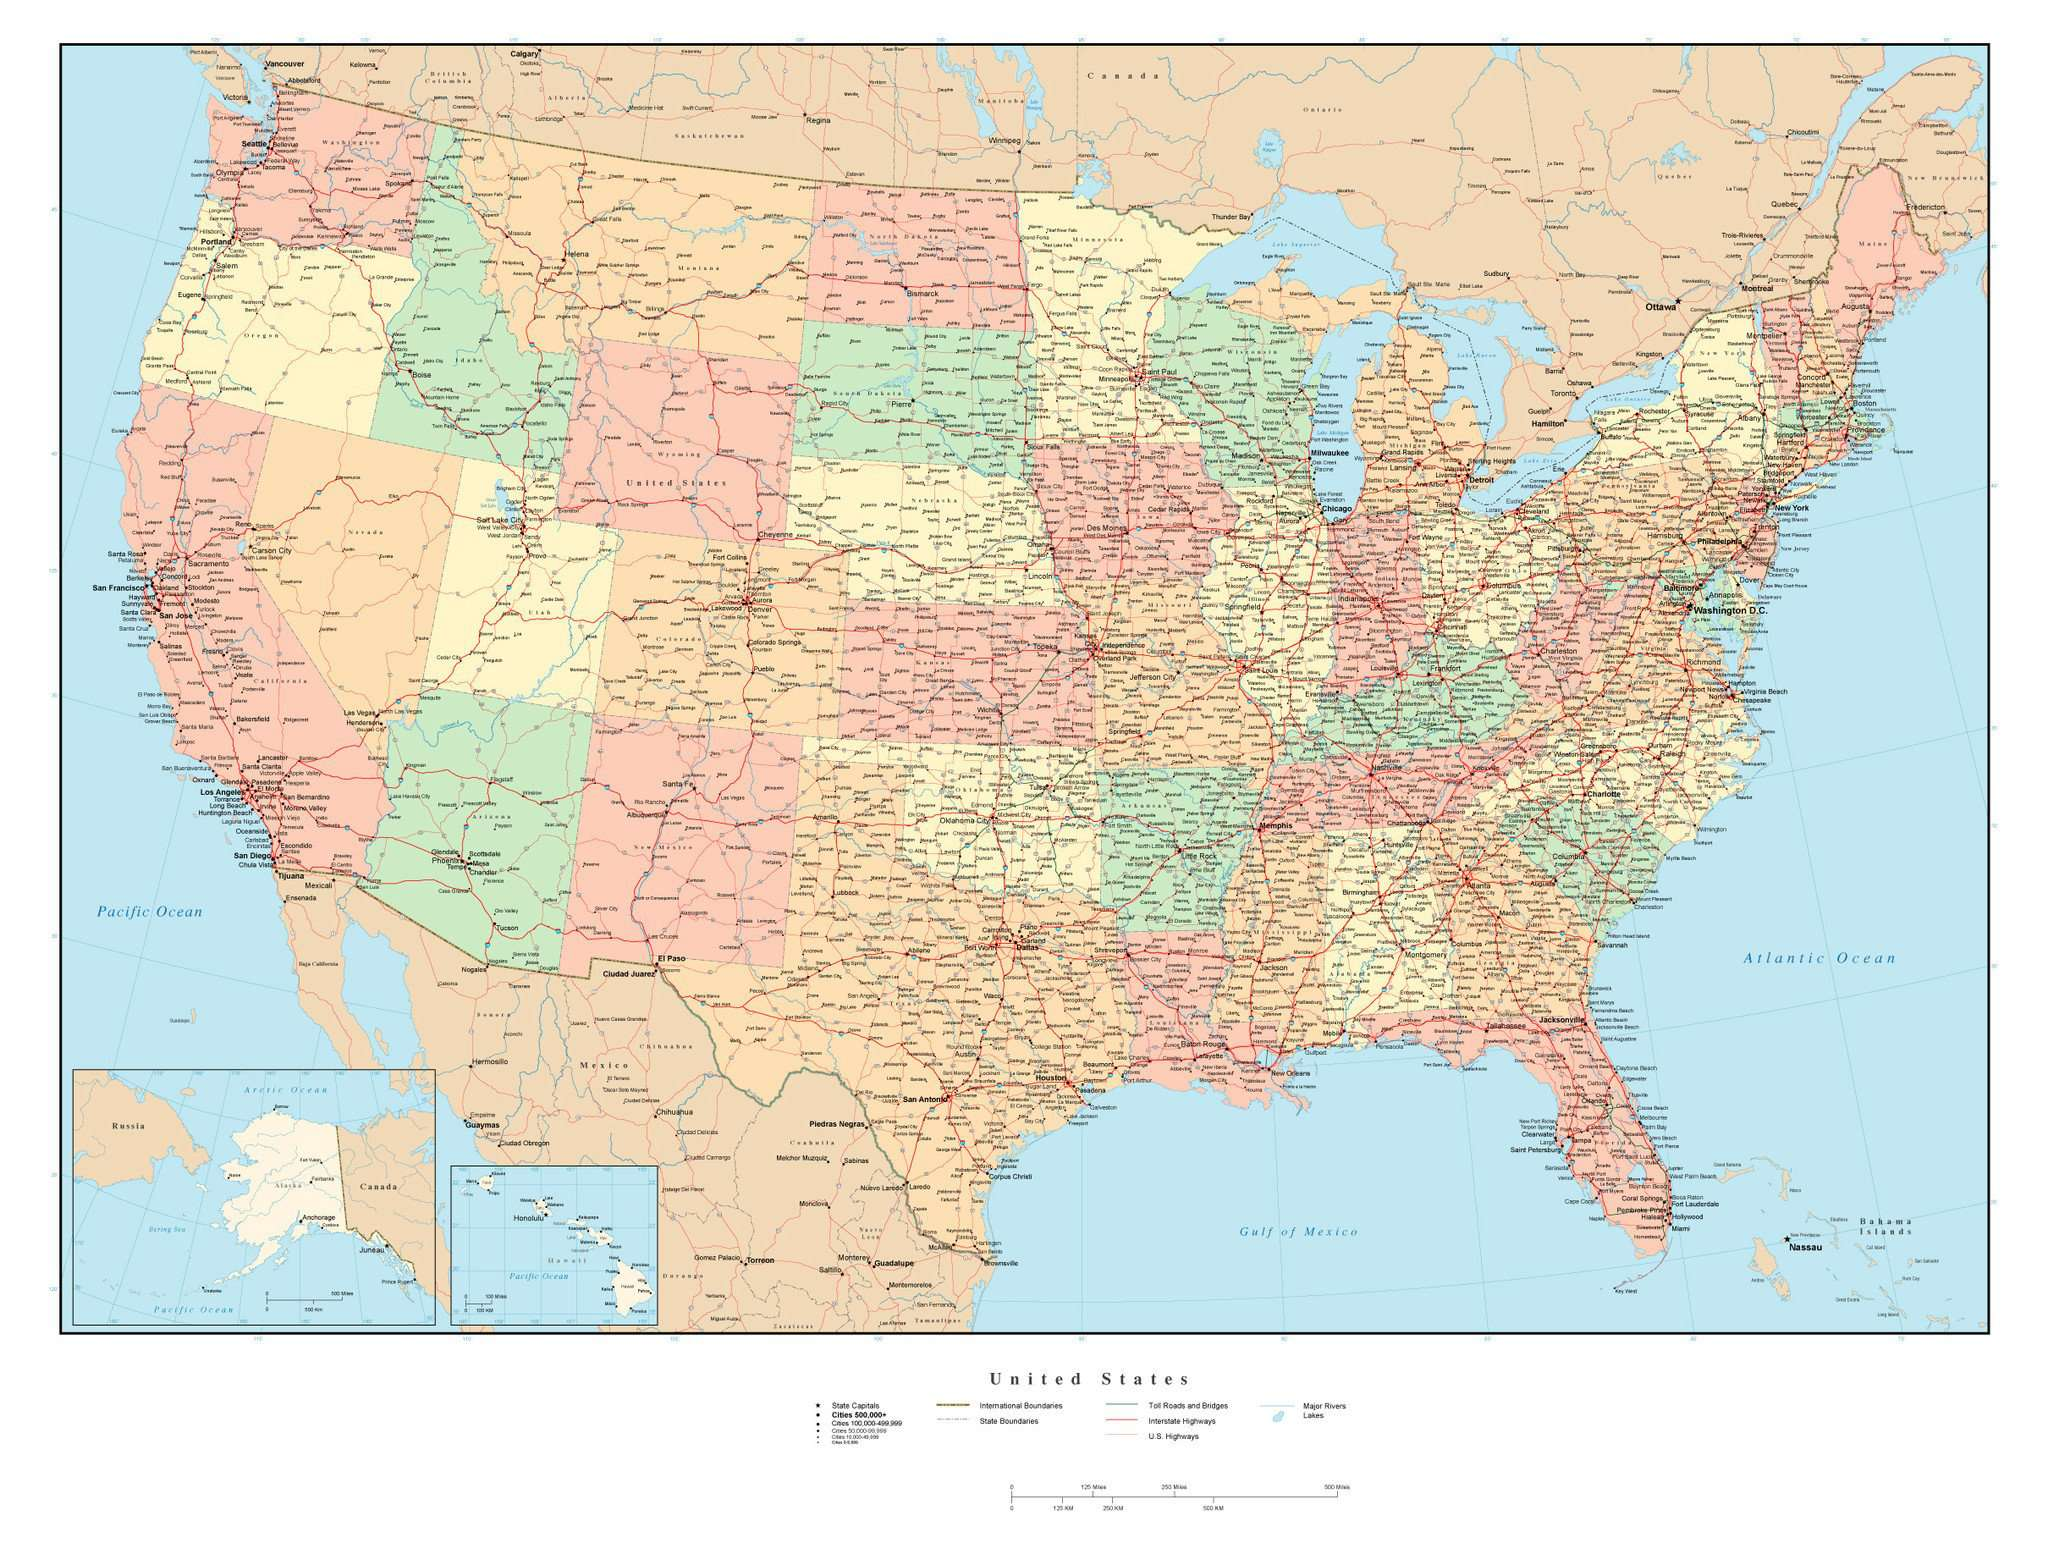 Poster Of Usa Map.Poster Size Usa Map With Cities Highways And Water Features Map